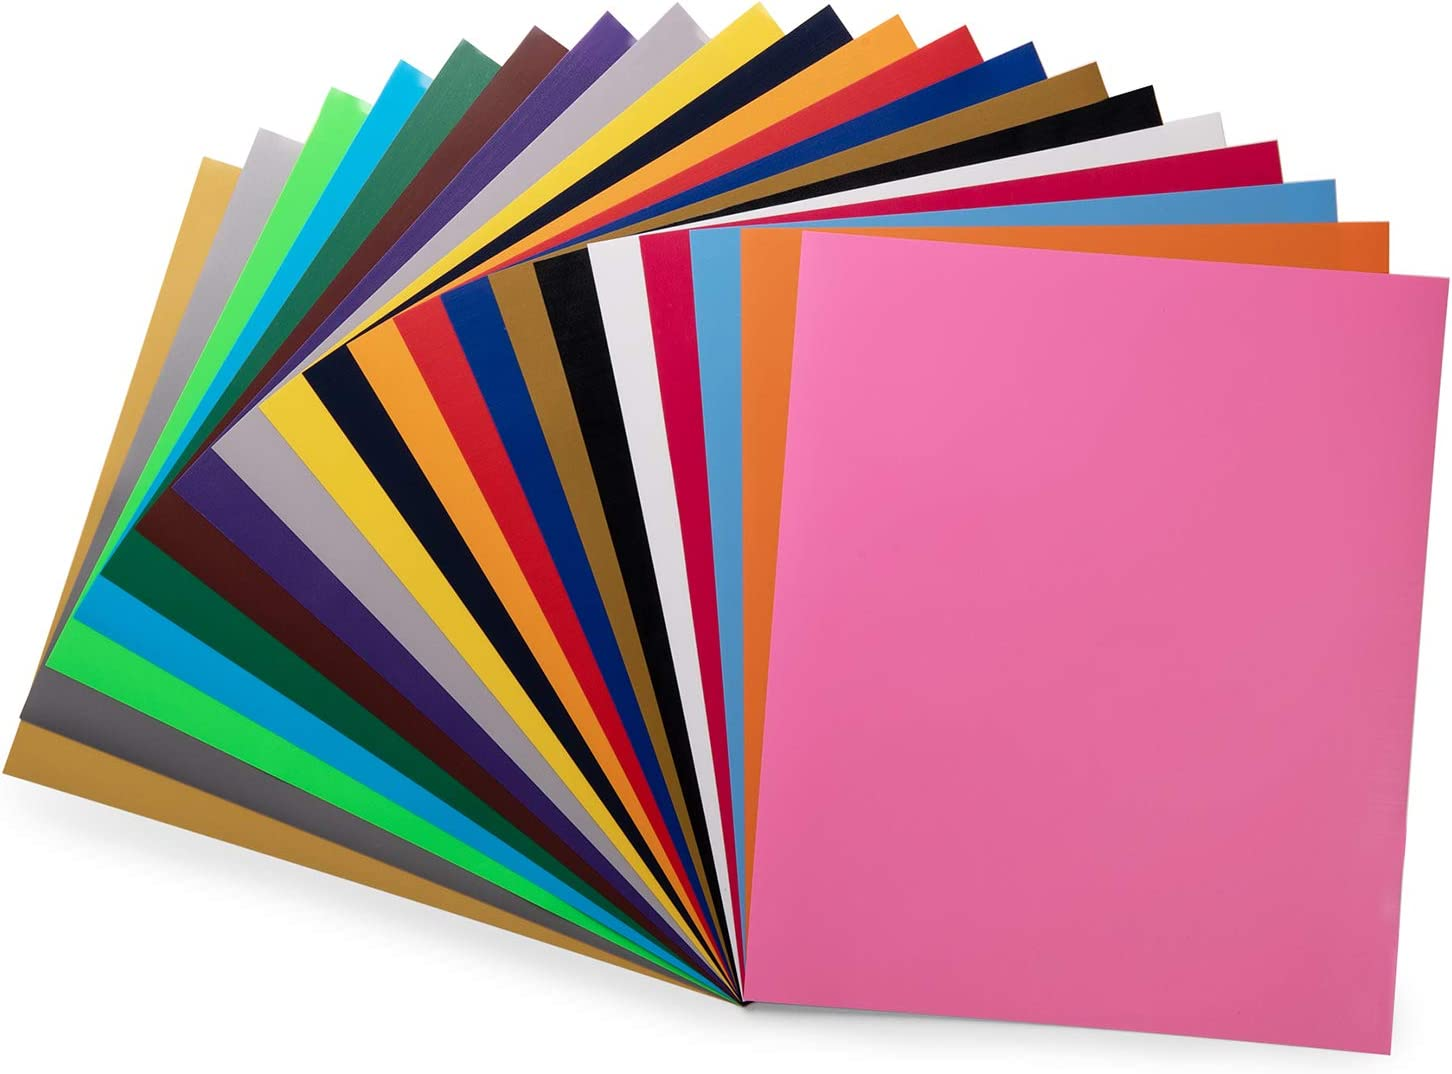 """PU HTV Vinyl Bundle 20 Pack 20 Assorted Colors 12""""x 10"""" Sheets, Iron On Heat Transfer Vinyl for Cricut & Silhouette Cameo, Easy to Cut & Weed Adhesive Vinyl for Design DIY T-Shirts and Clothes: Home & Kitchen"""